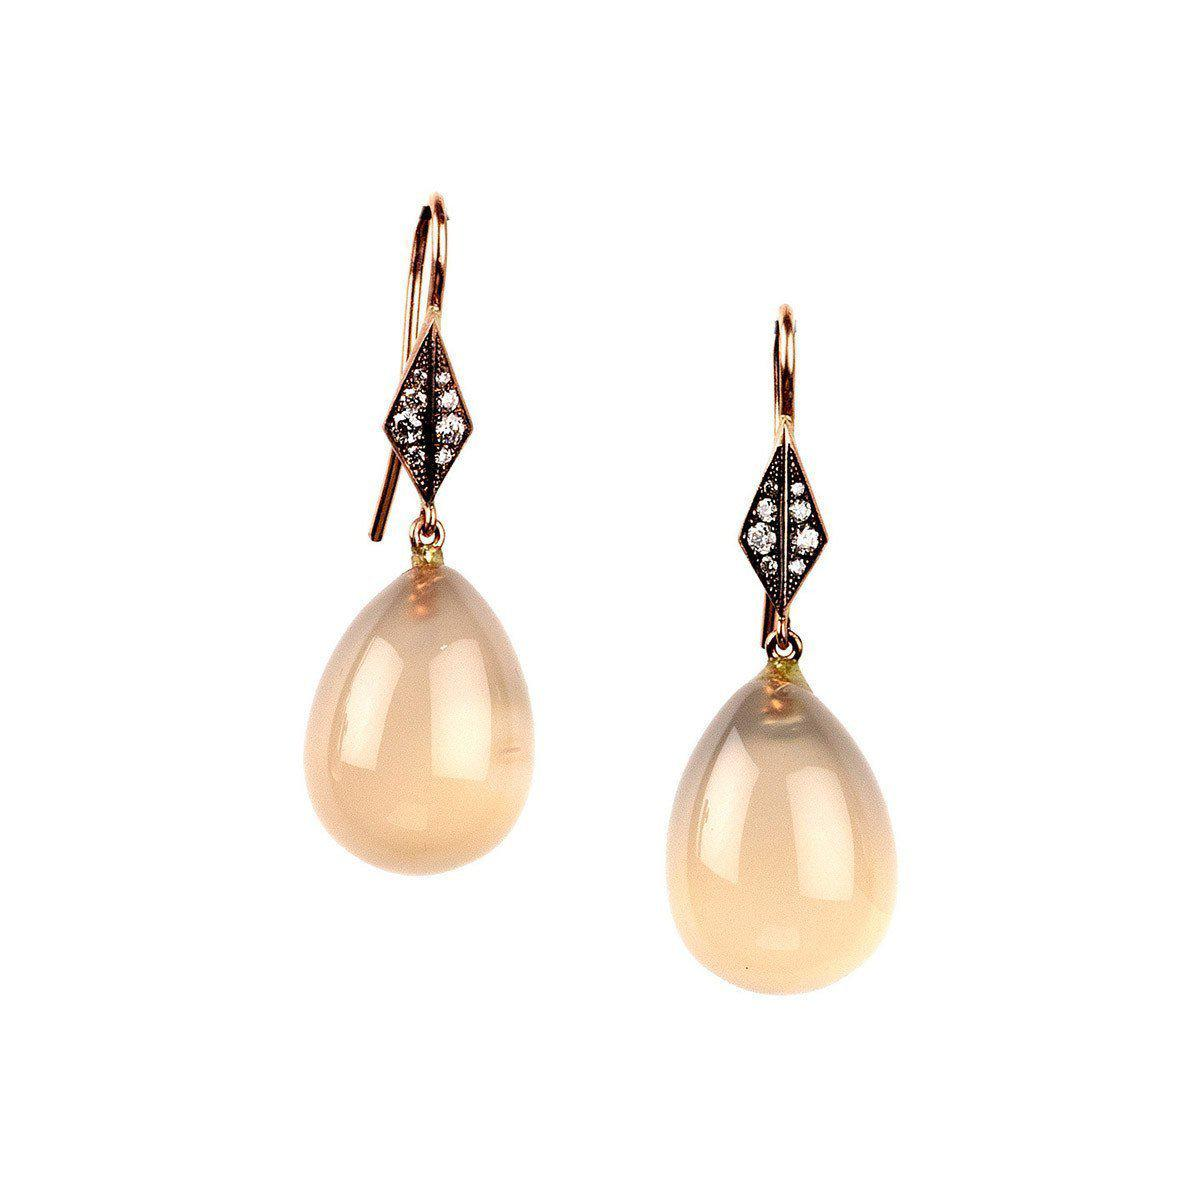 Sylva & Cie. Cornelian Drop Earrings 8HpCp